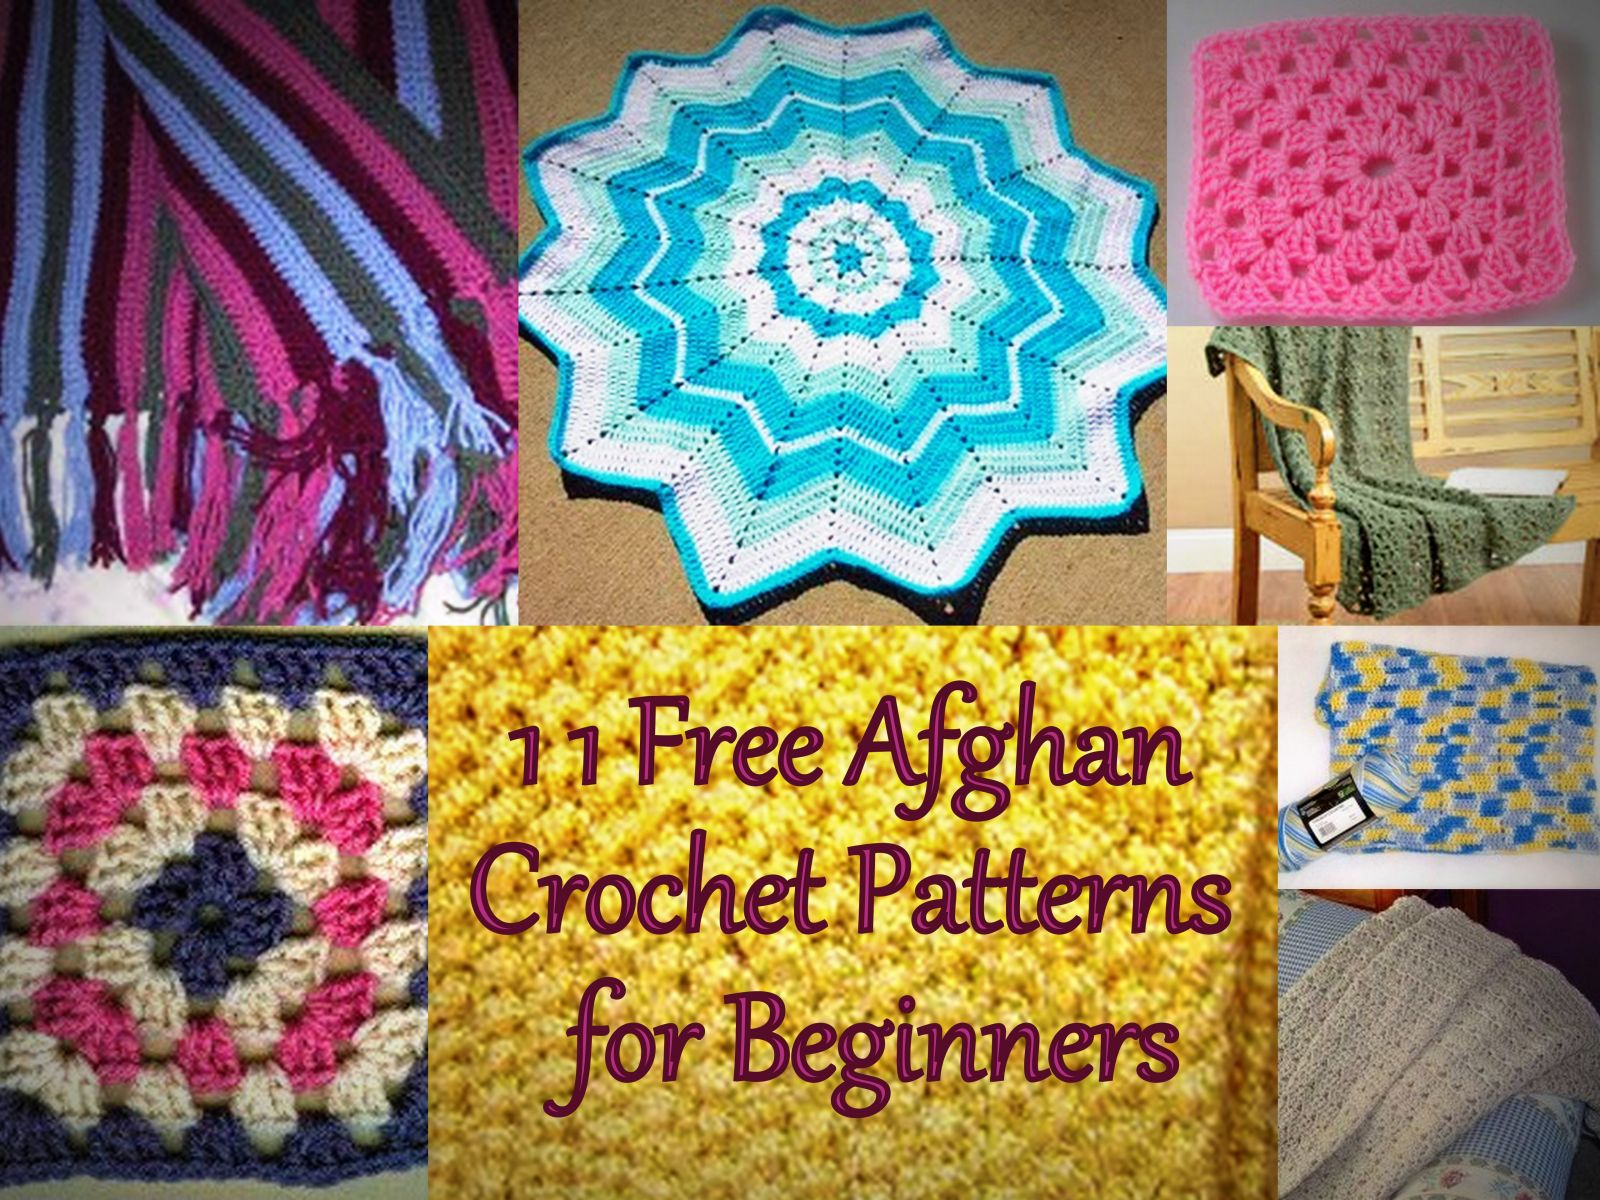 Easy Crochet Afghan Patterns For Beginners Free : Basic Broomstick Lace Afghan ...